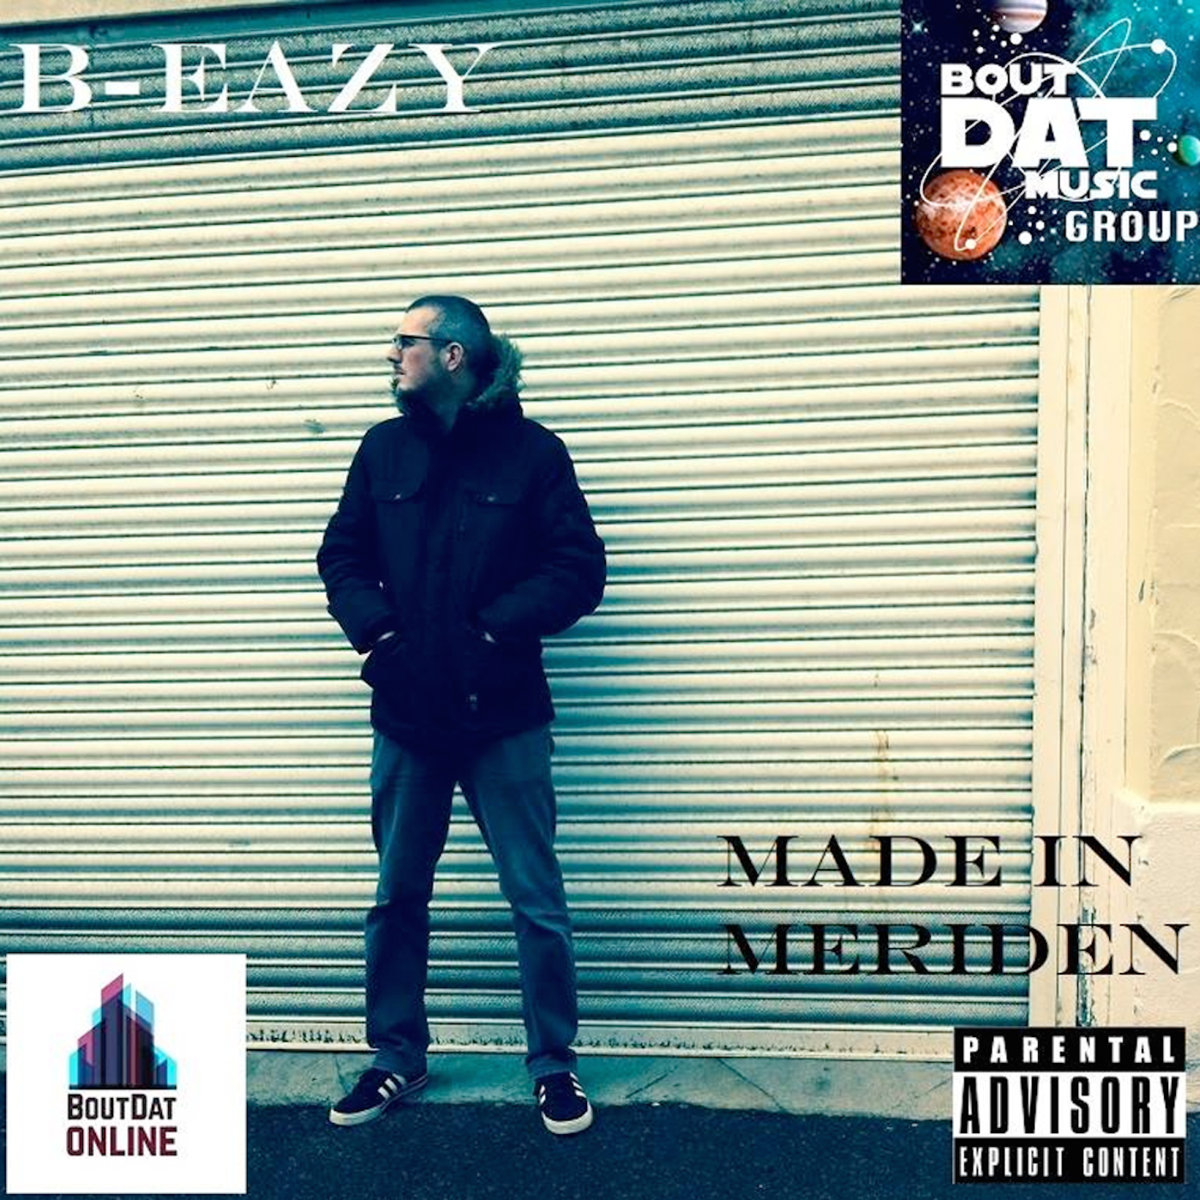 Bout Dat Music Group Presents: B-Eazy - Made In Meriden EP